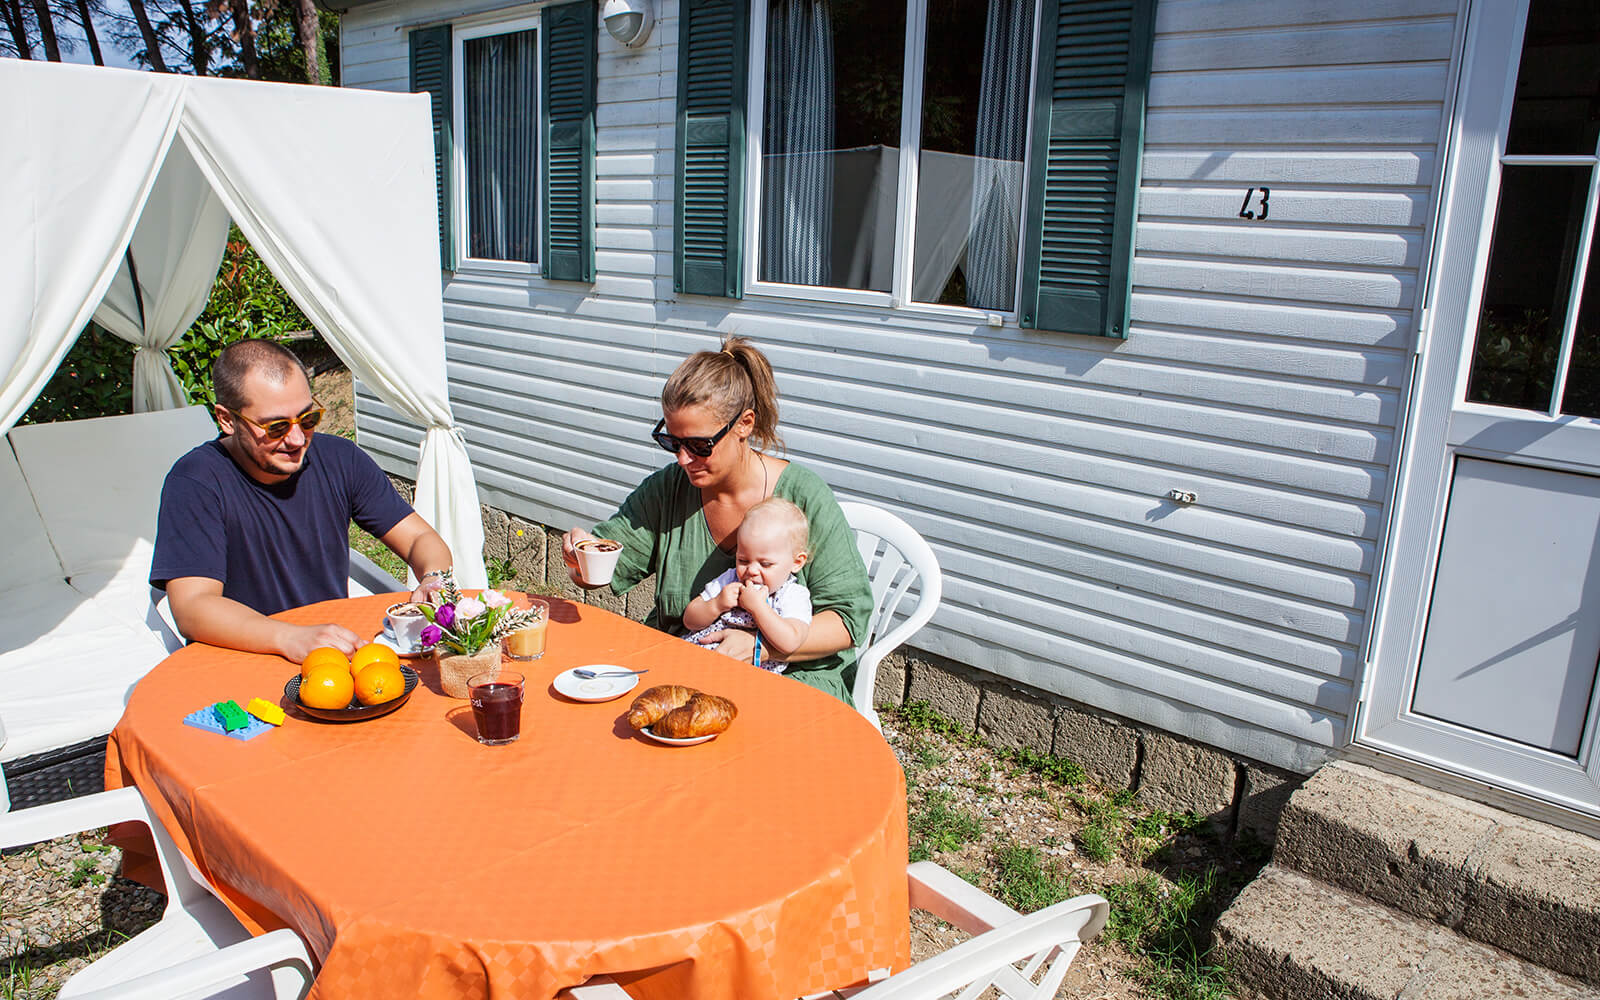 Family sitting at table outside holiday home